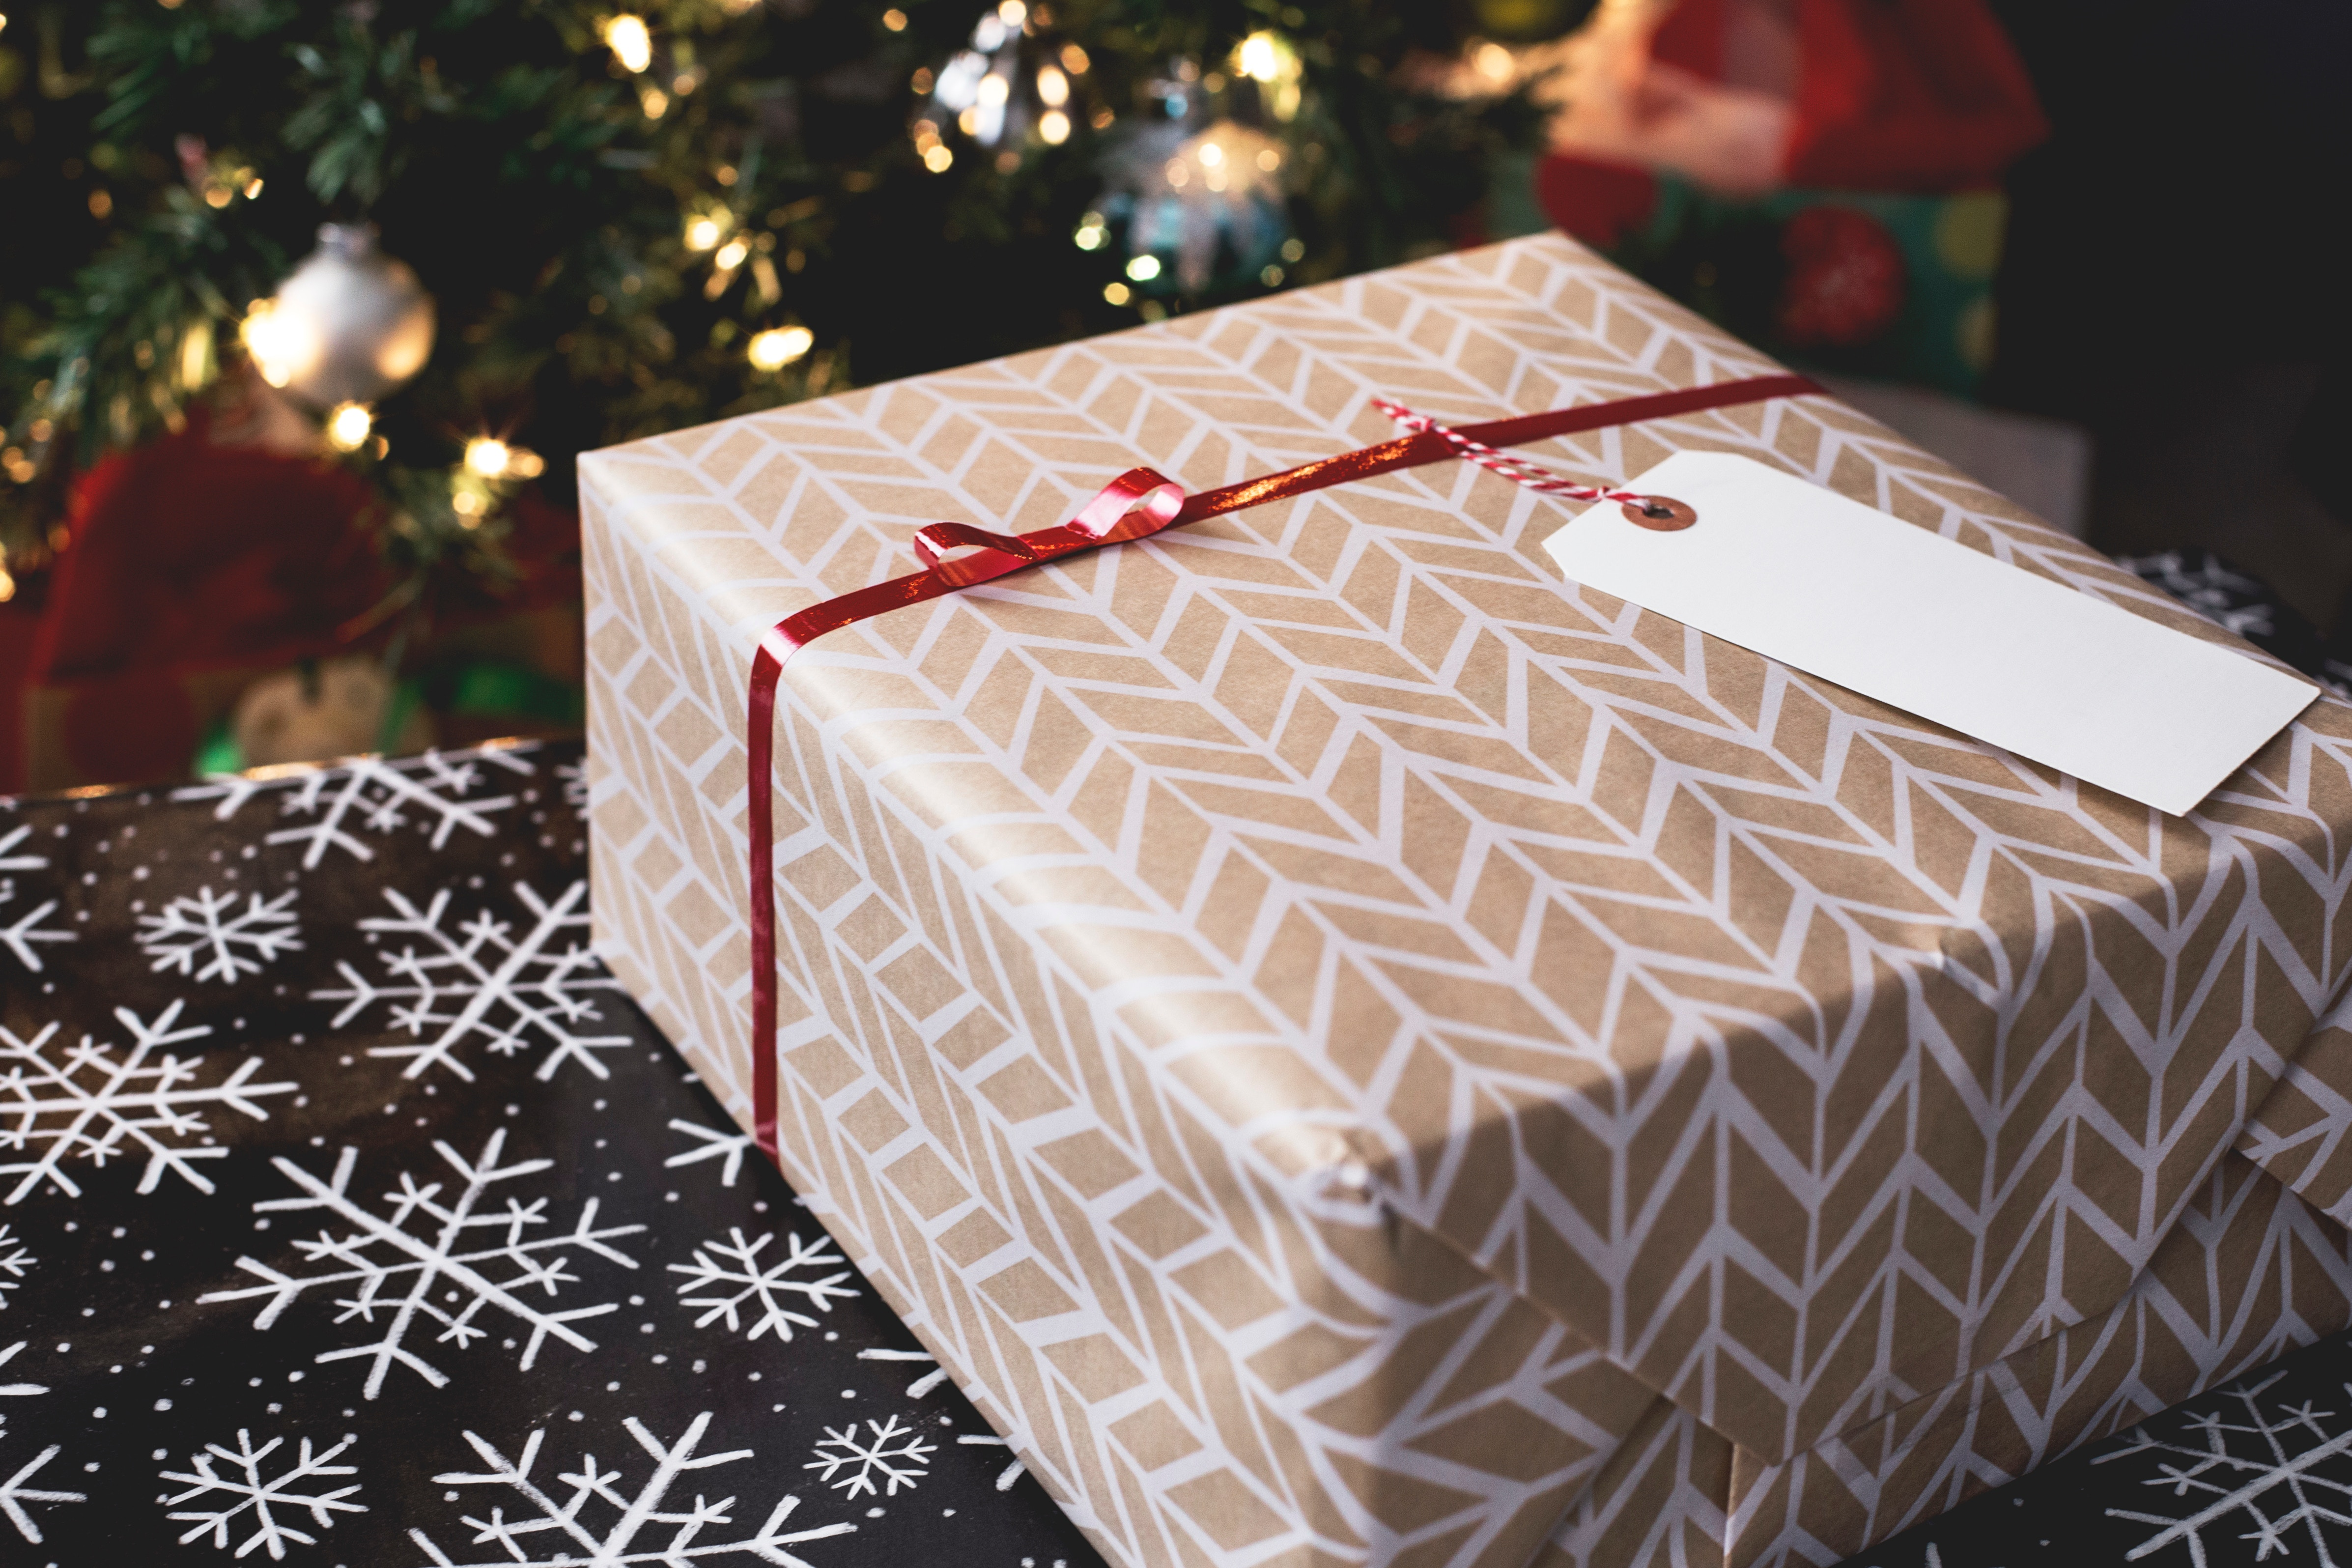 TravelBrands' Intair launches 12 Days of Giveaways for agents